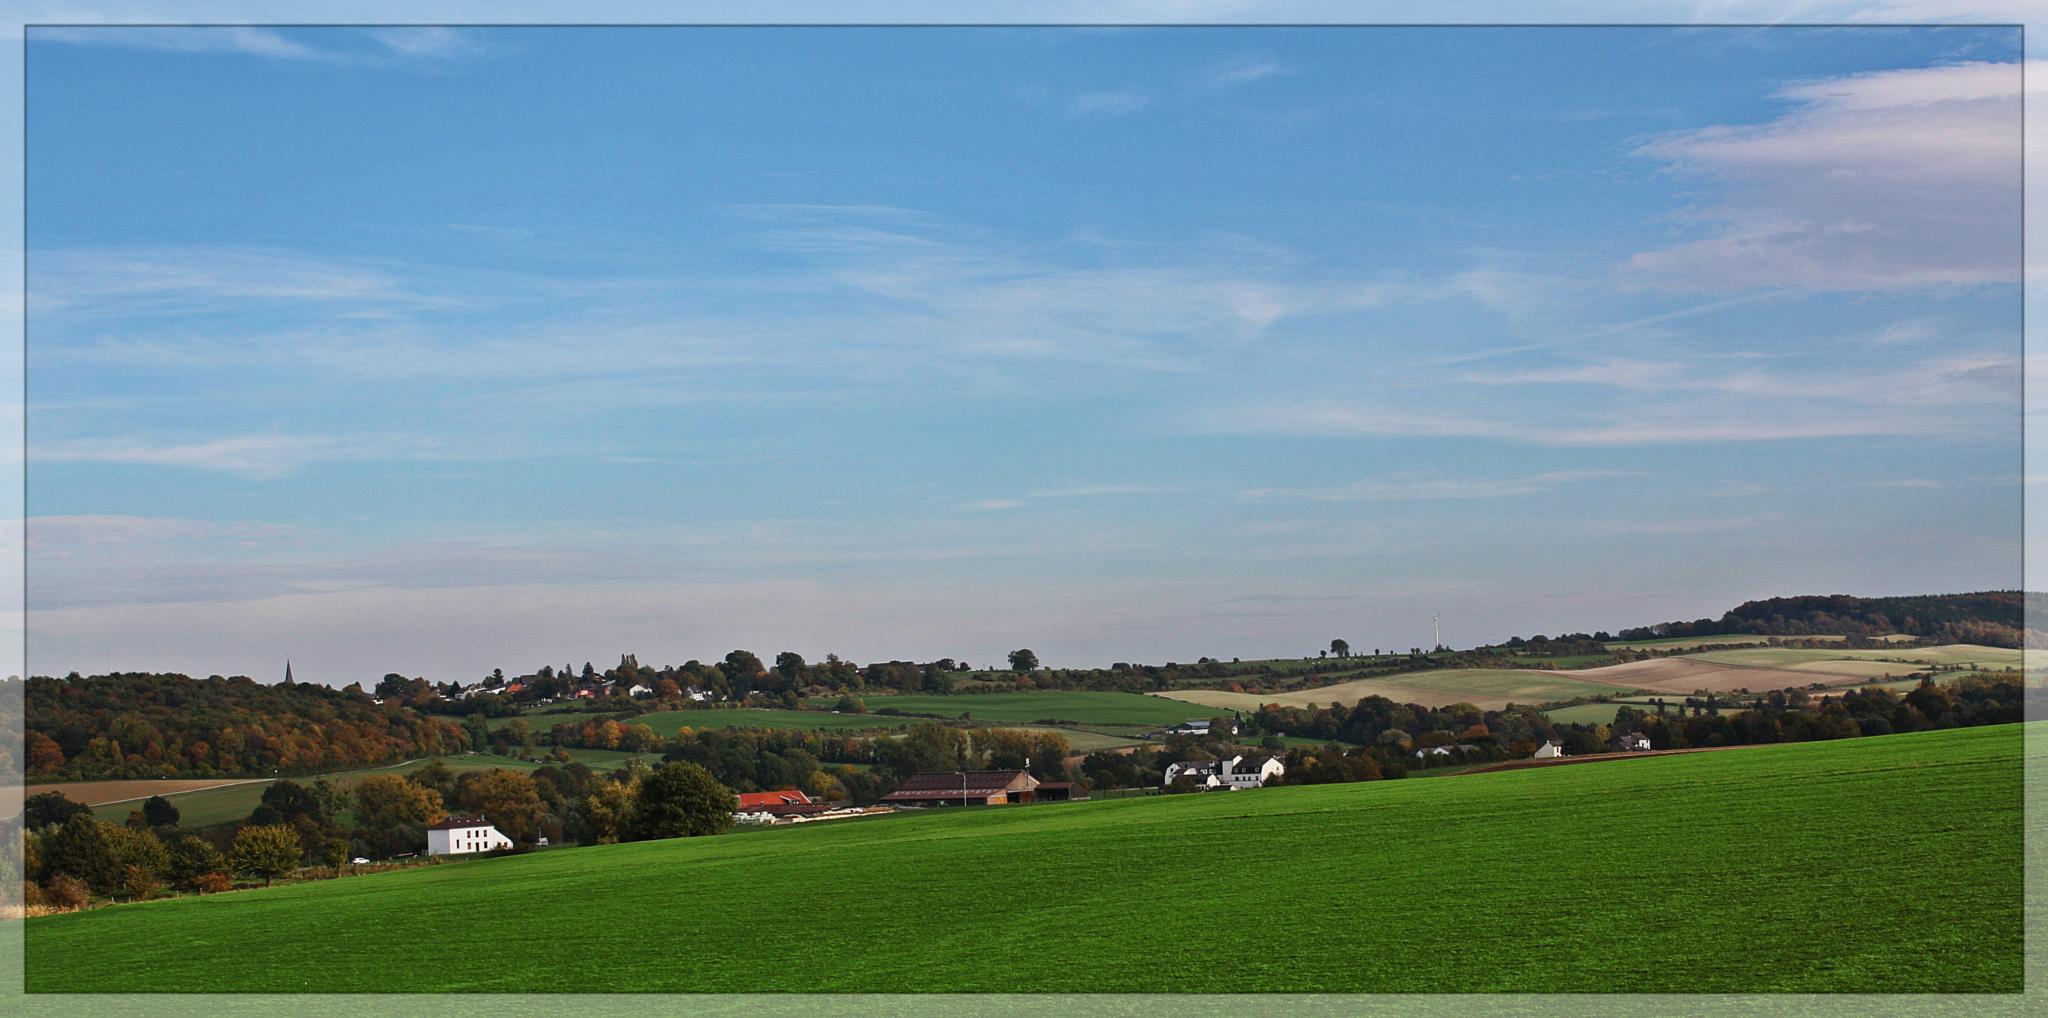 The hills_south of the Netherlands by audrey.verhoevenernst